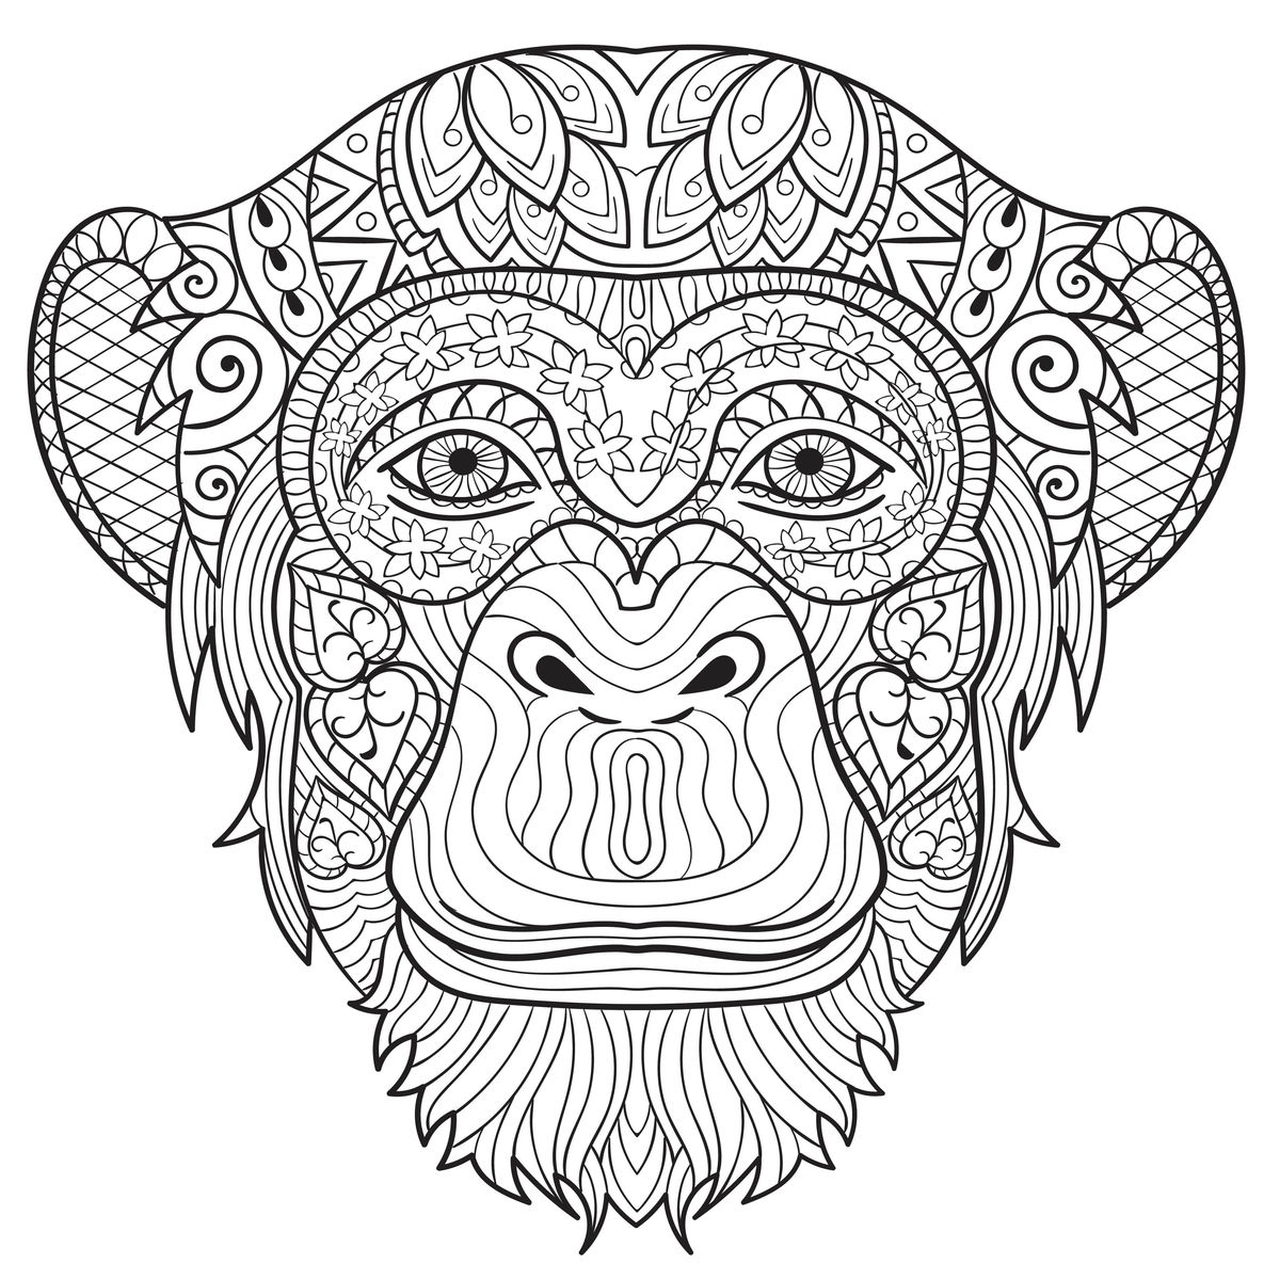 1280x1280 Fresh Design Monkey Coloring Pages Get This For Adults